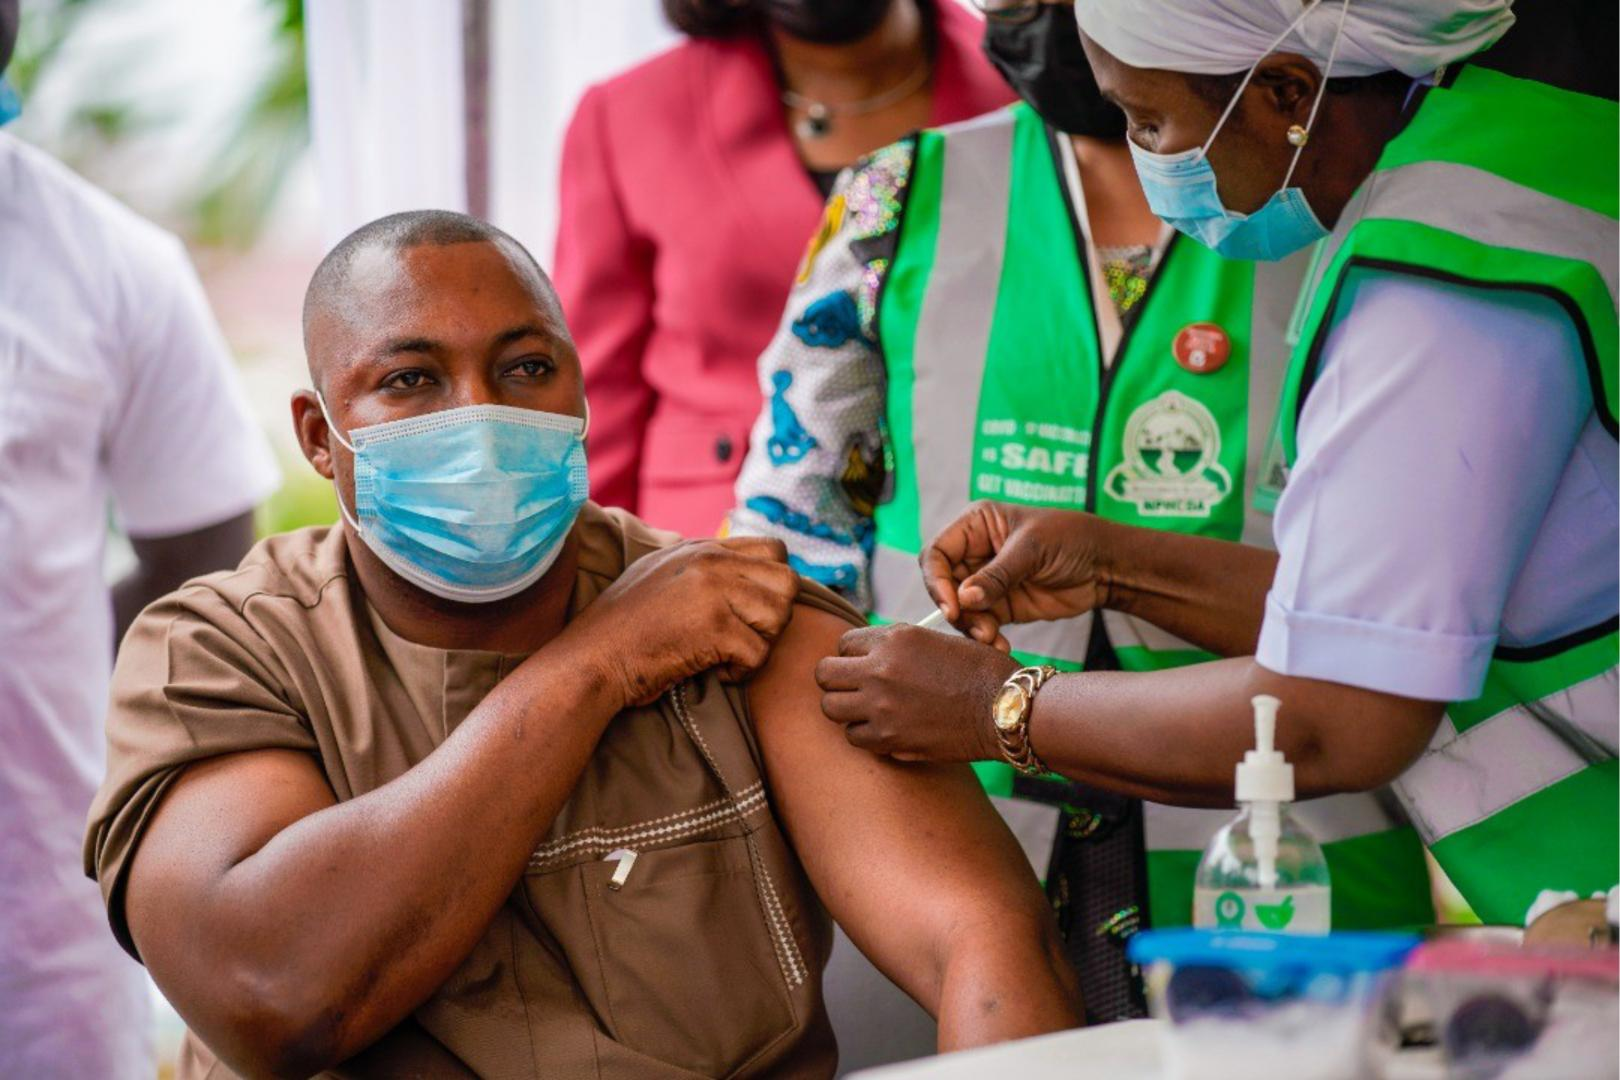 FG To Arrest Prosecute Those With Fake Covid-19 Vaccination Cards